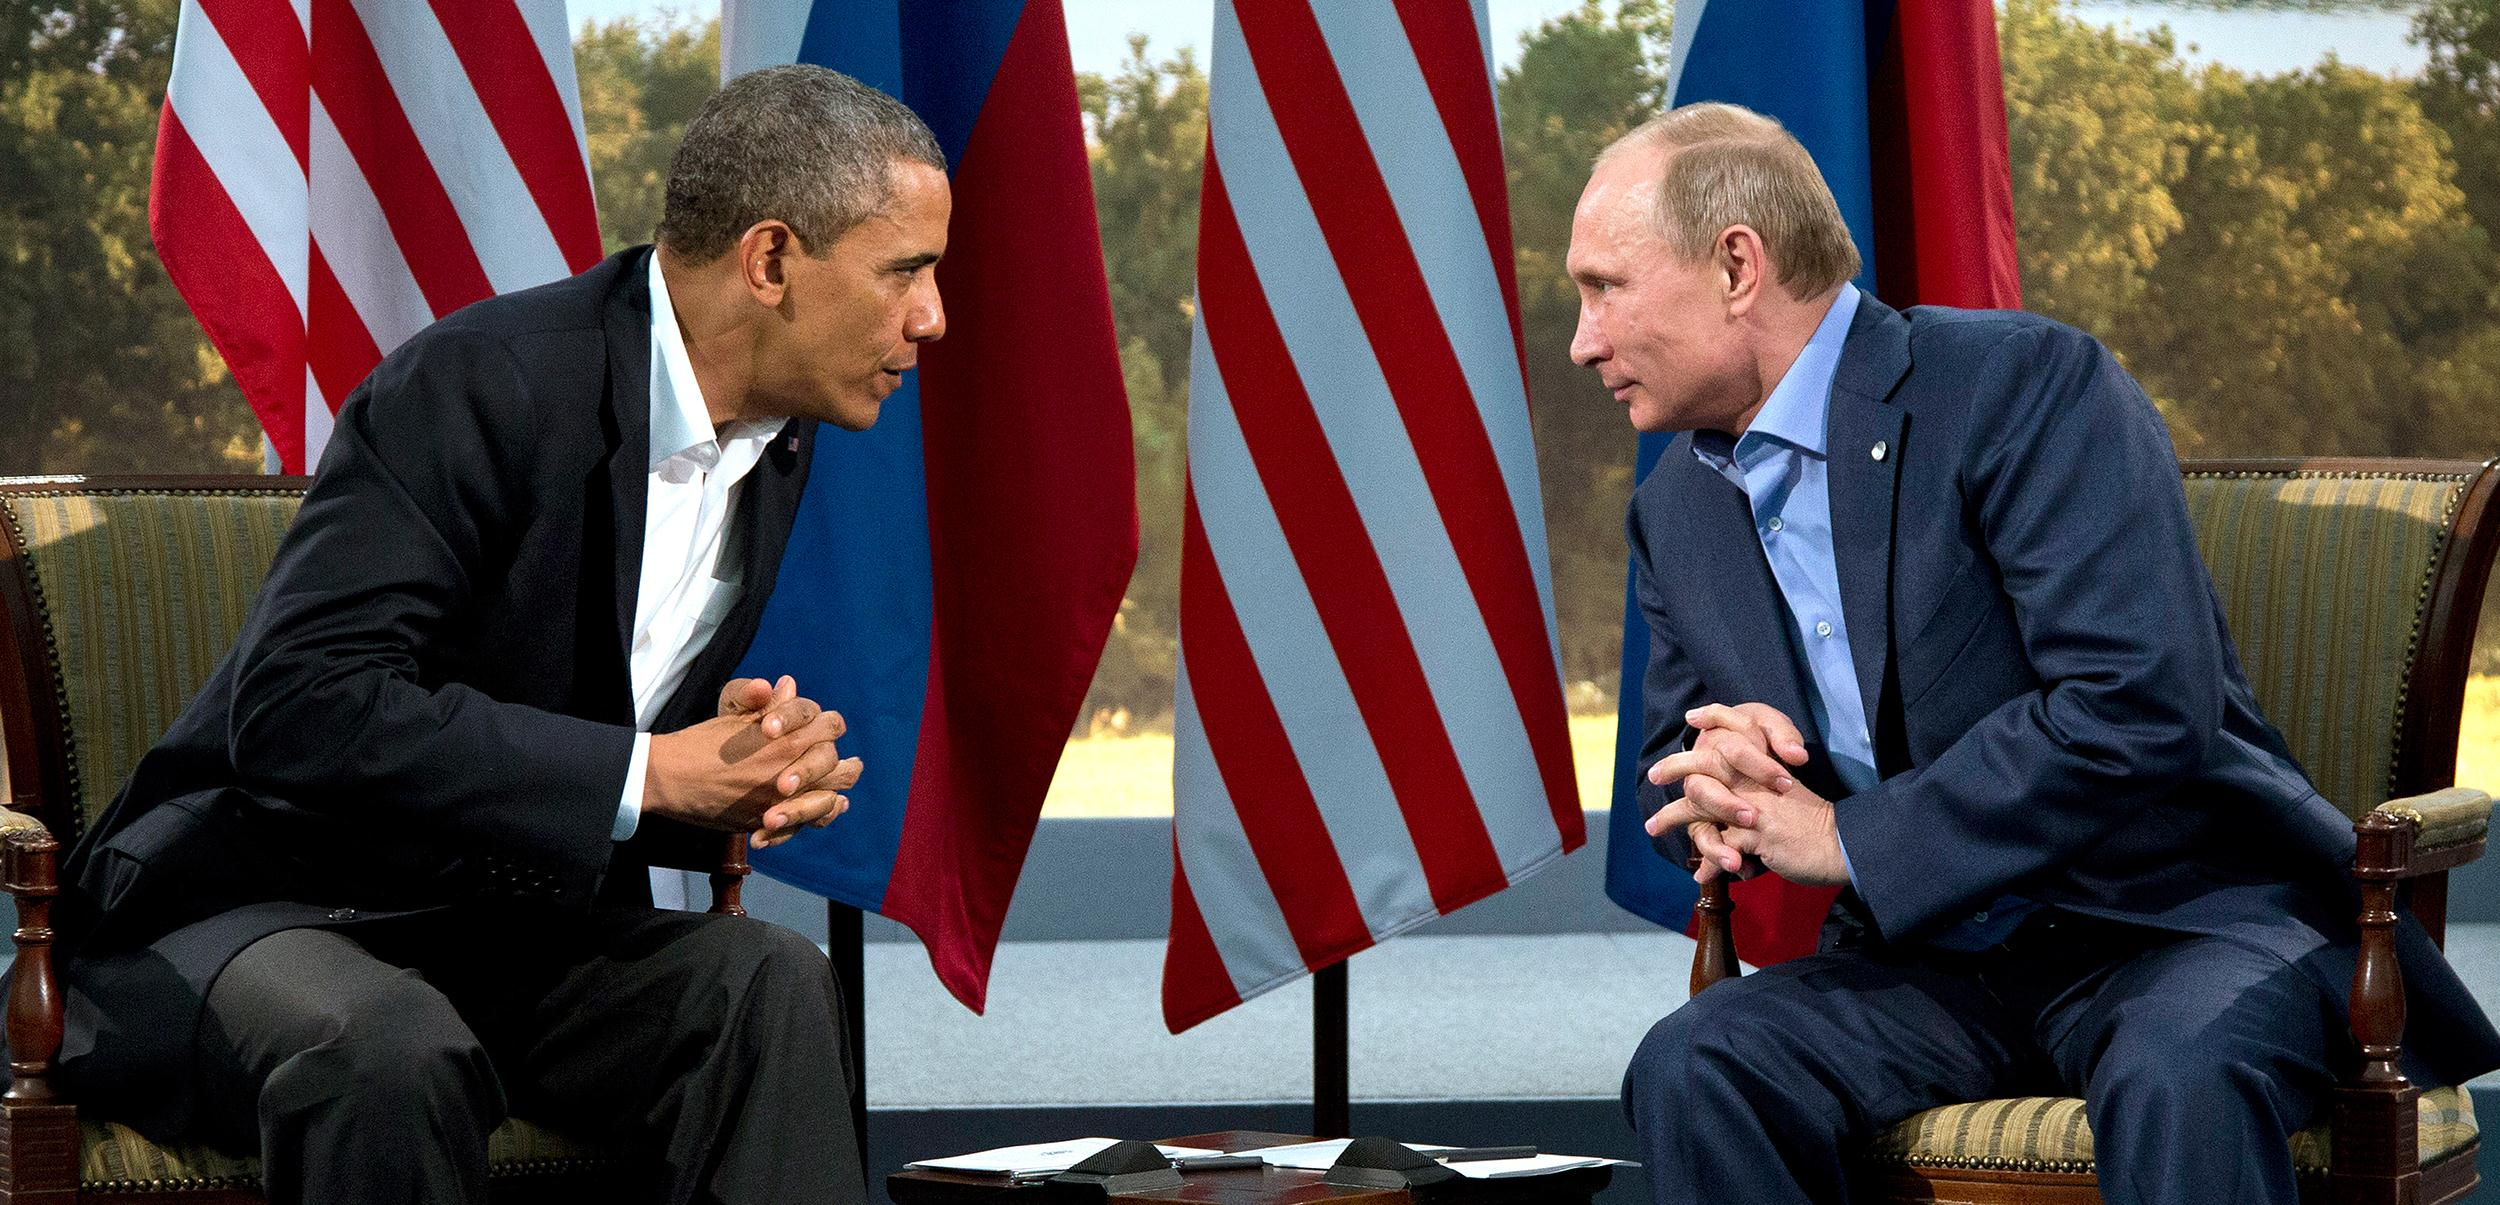 140316 obama putin jms 1716 8738df87611b8c672fae8d824b332866 In Syria: Towards The Elections